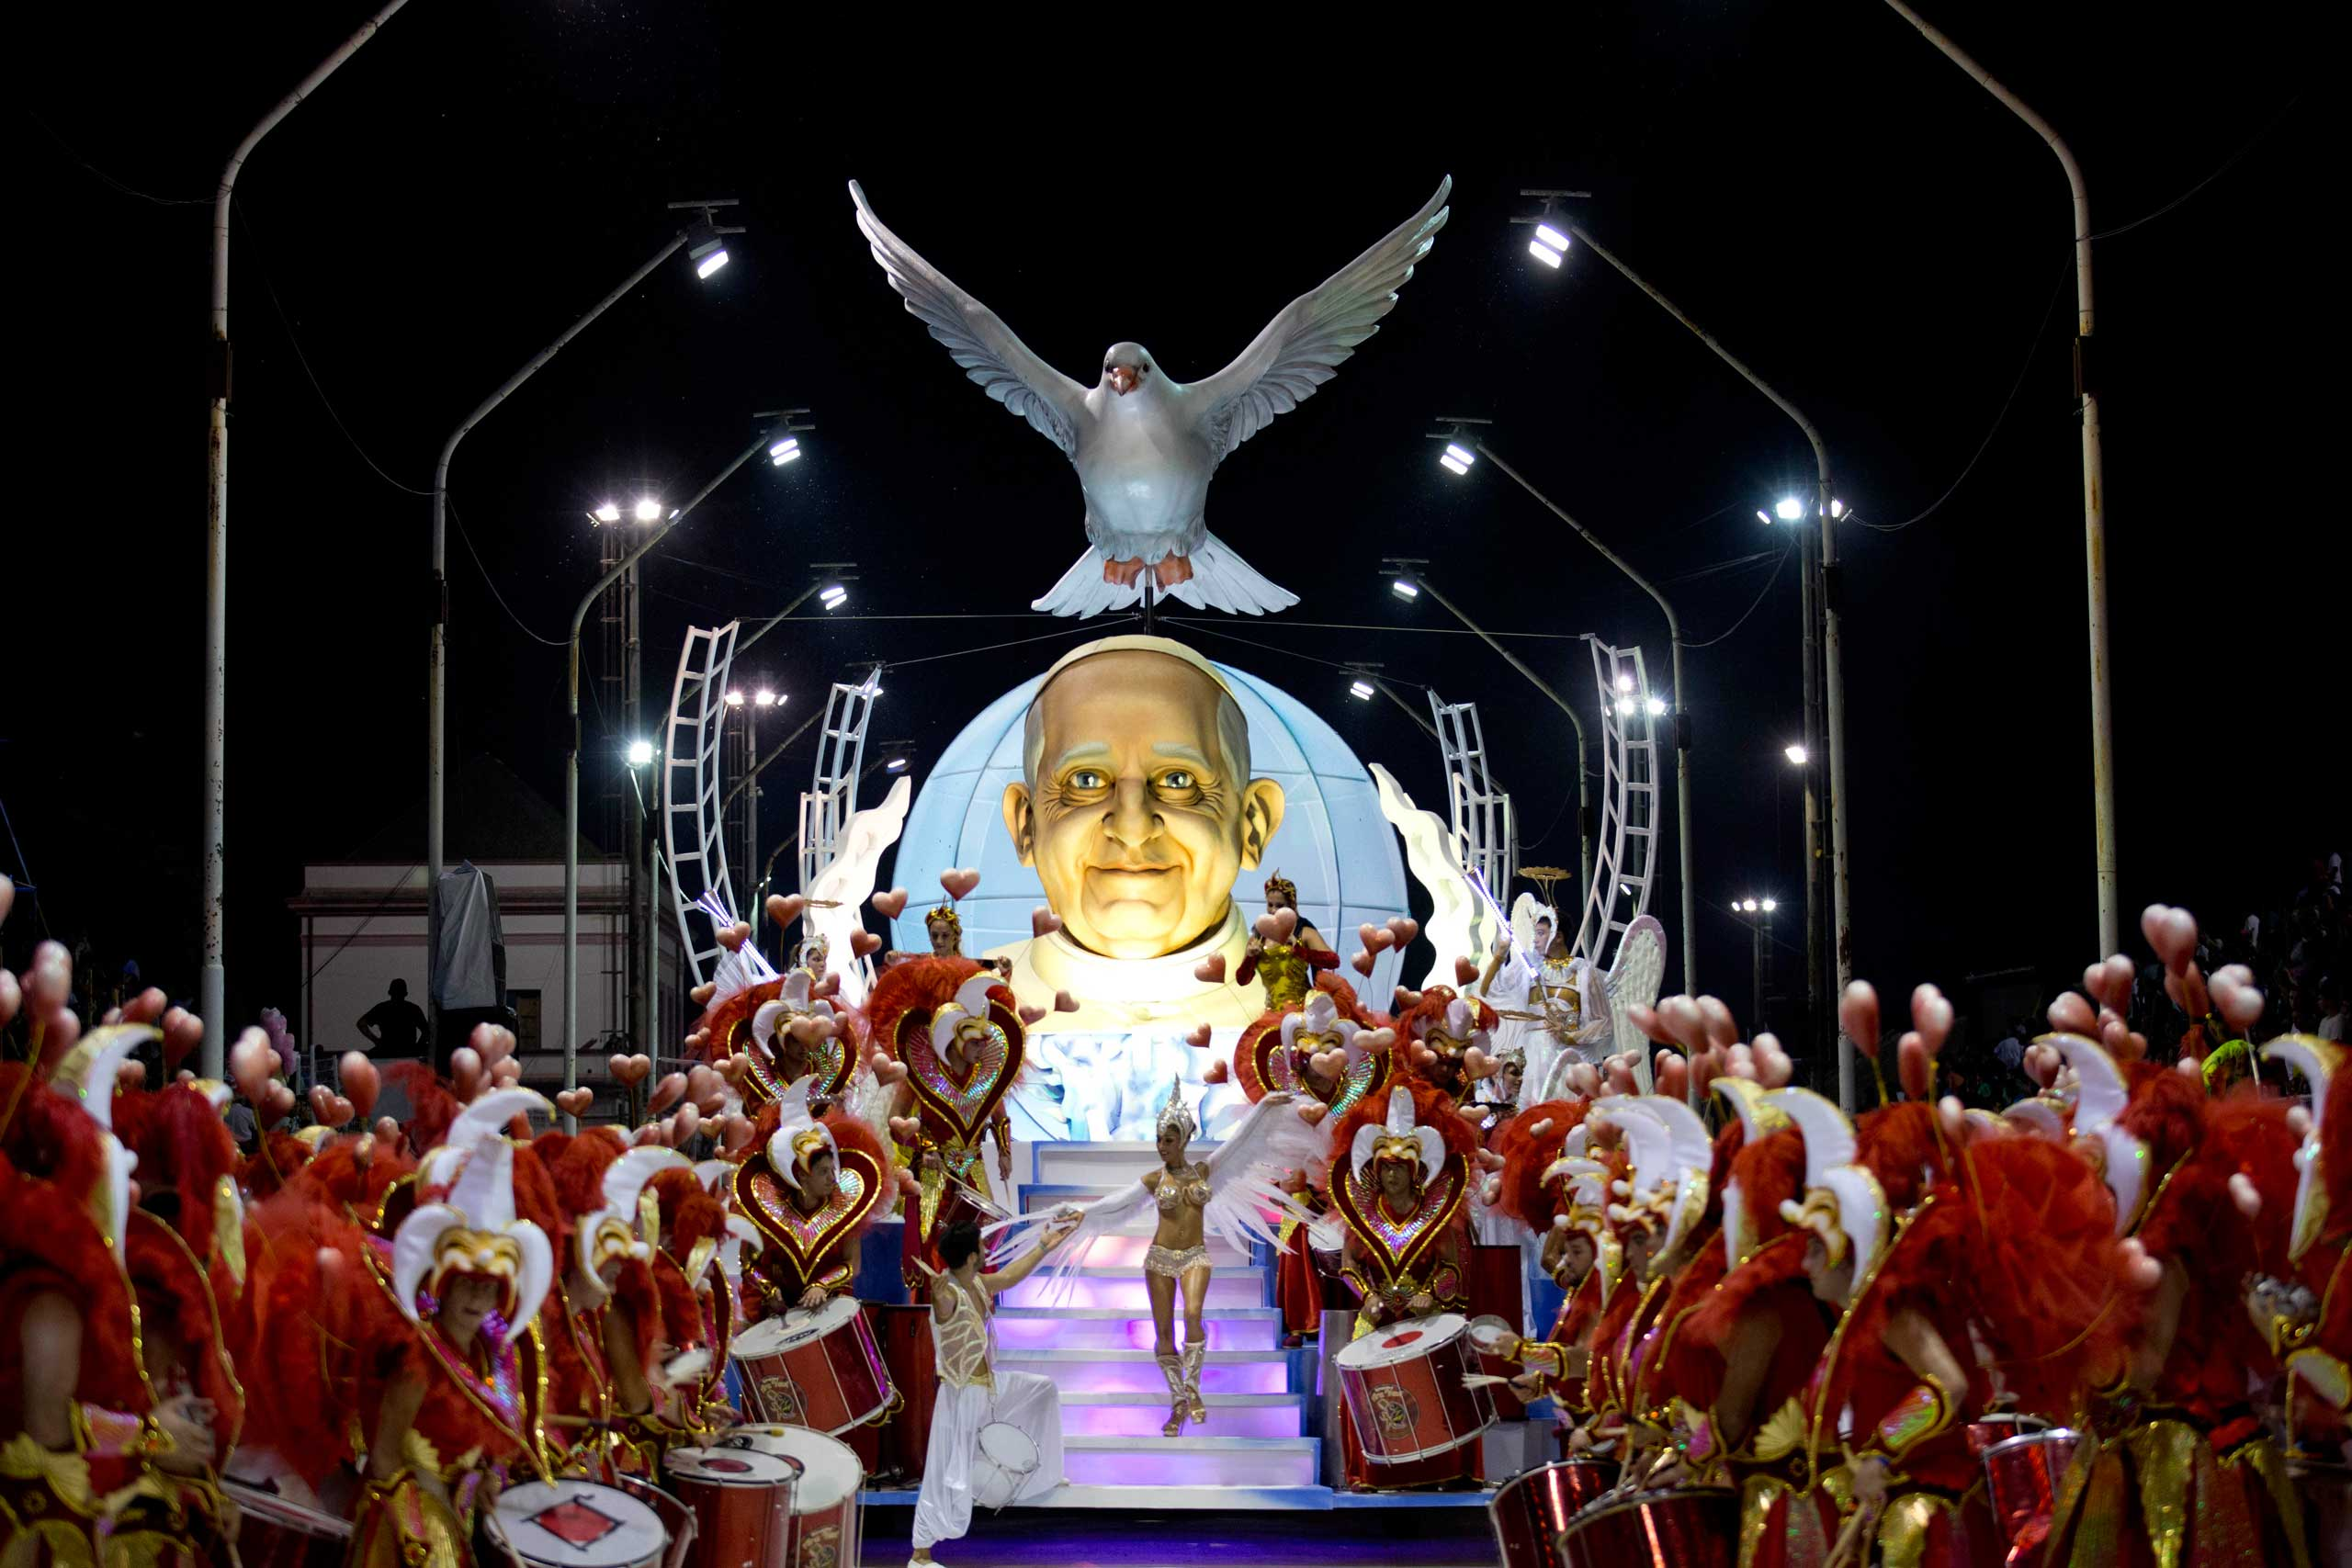 The Ara Yevi samba school performs on a float showcasing Pope Francis during carnival in Gualeguaychu, Argentina, early Sunday, Jan. 11, 2015. Members of the samba school said the Pope doesn't know they chose to honor his life at this year's celebration and look forward for him seeing their performing. (AP Photo/Natacha Pisarenko)